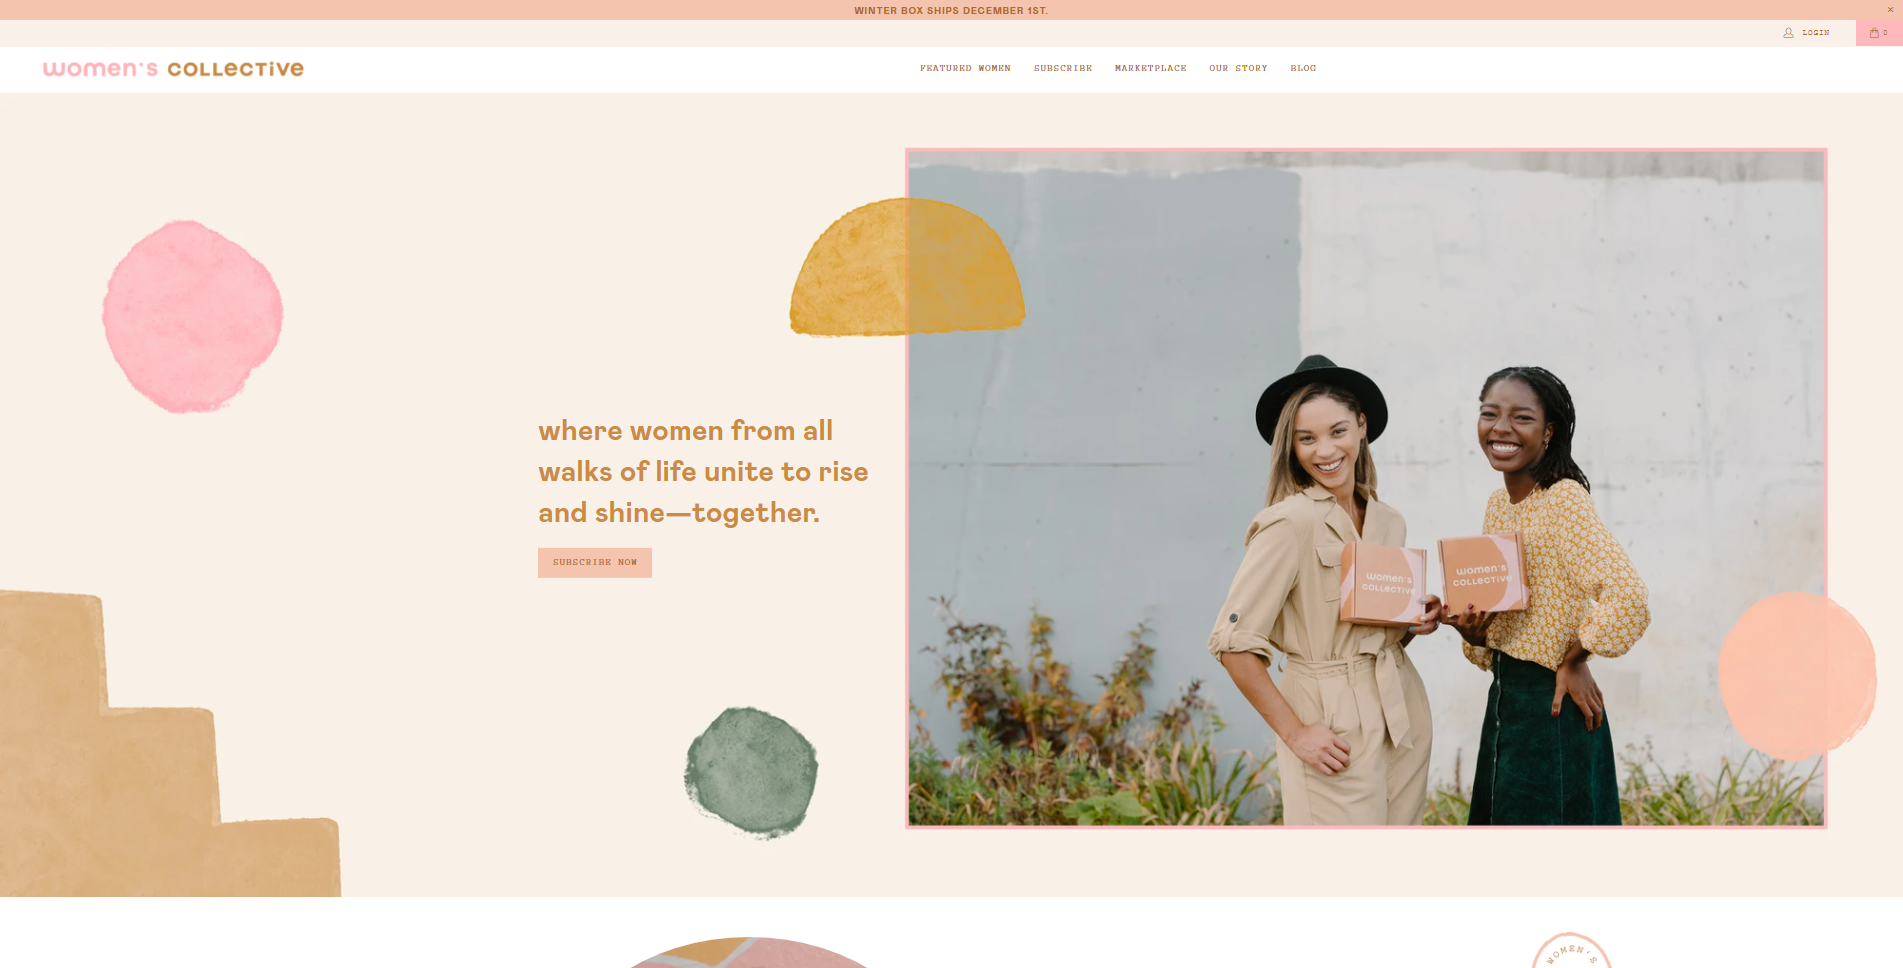 womens collective website development portfolio